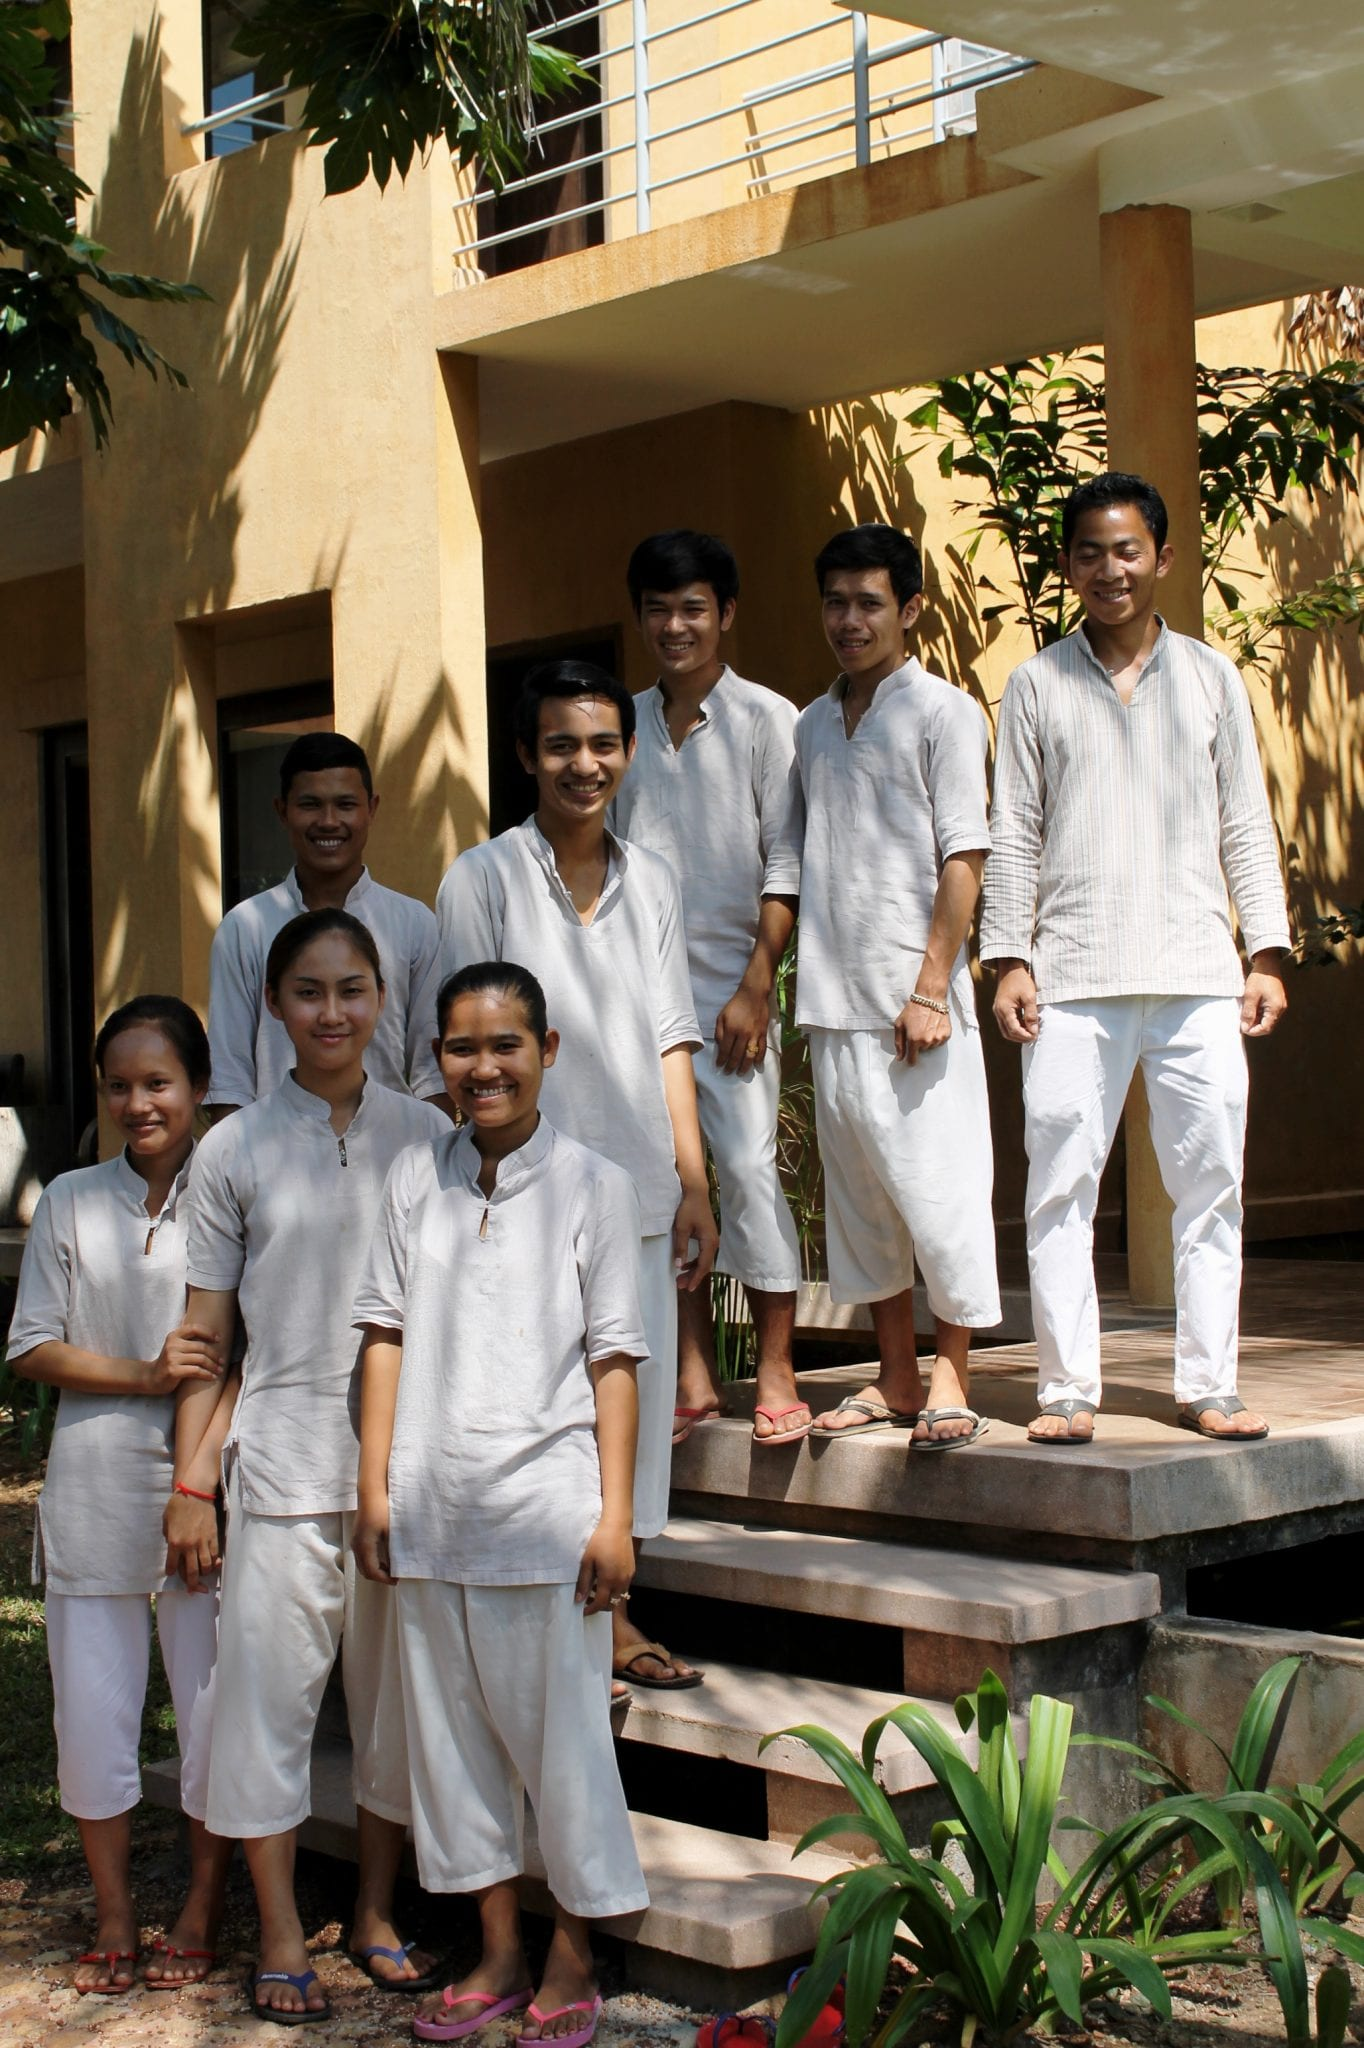 housekeeping staff image.jpg 1